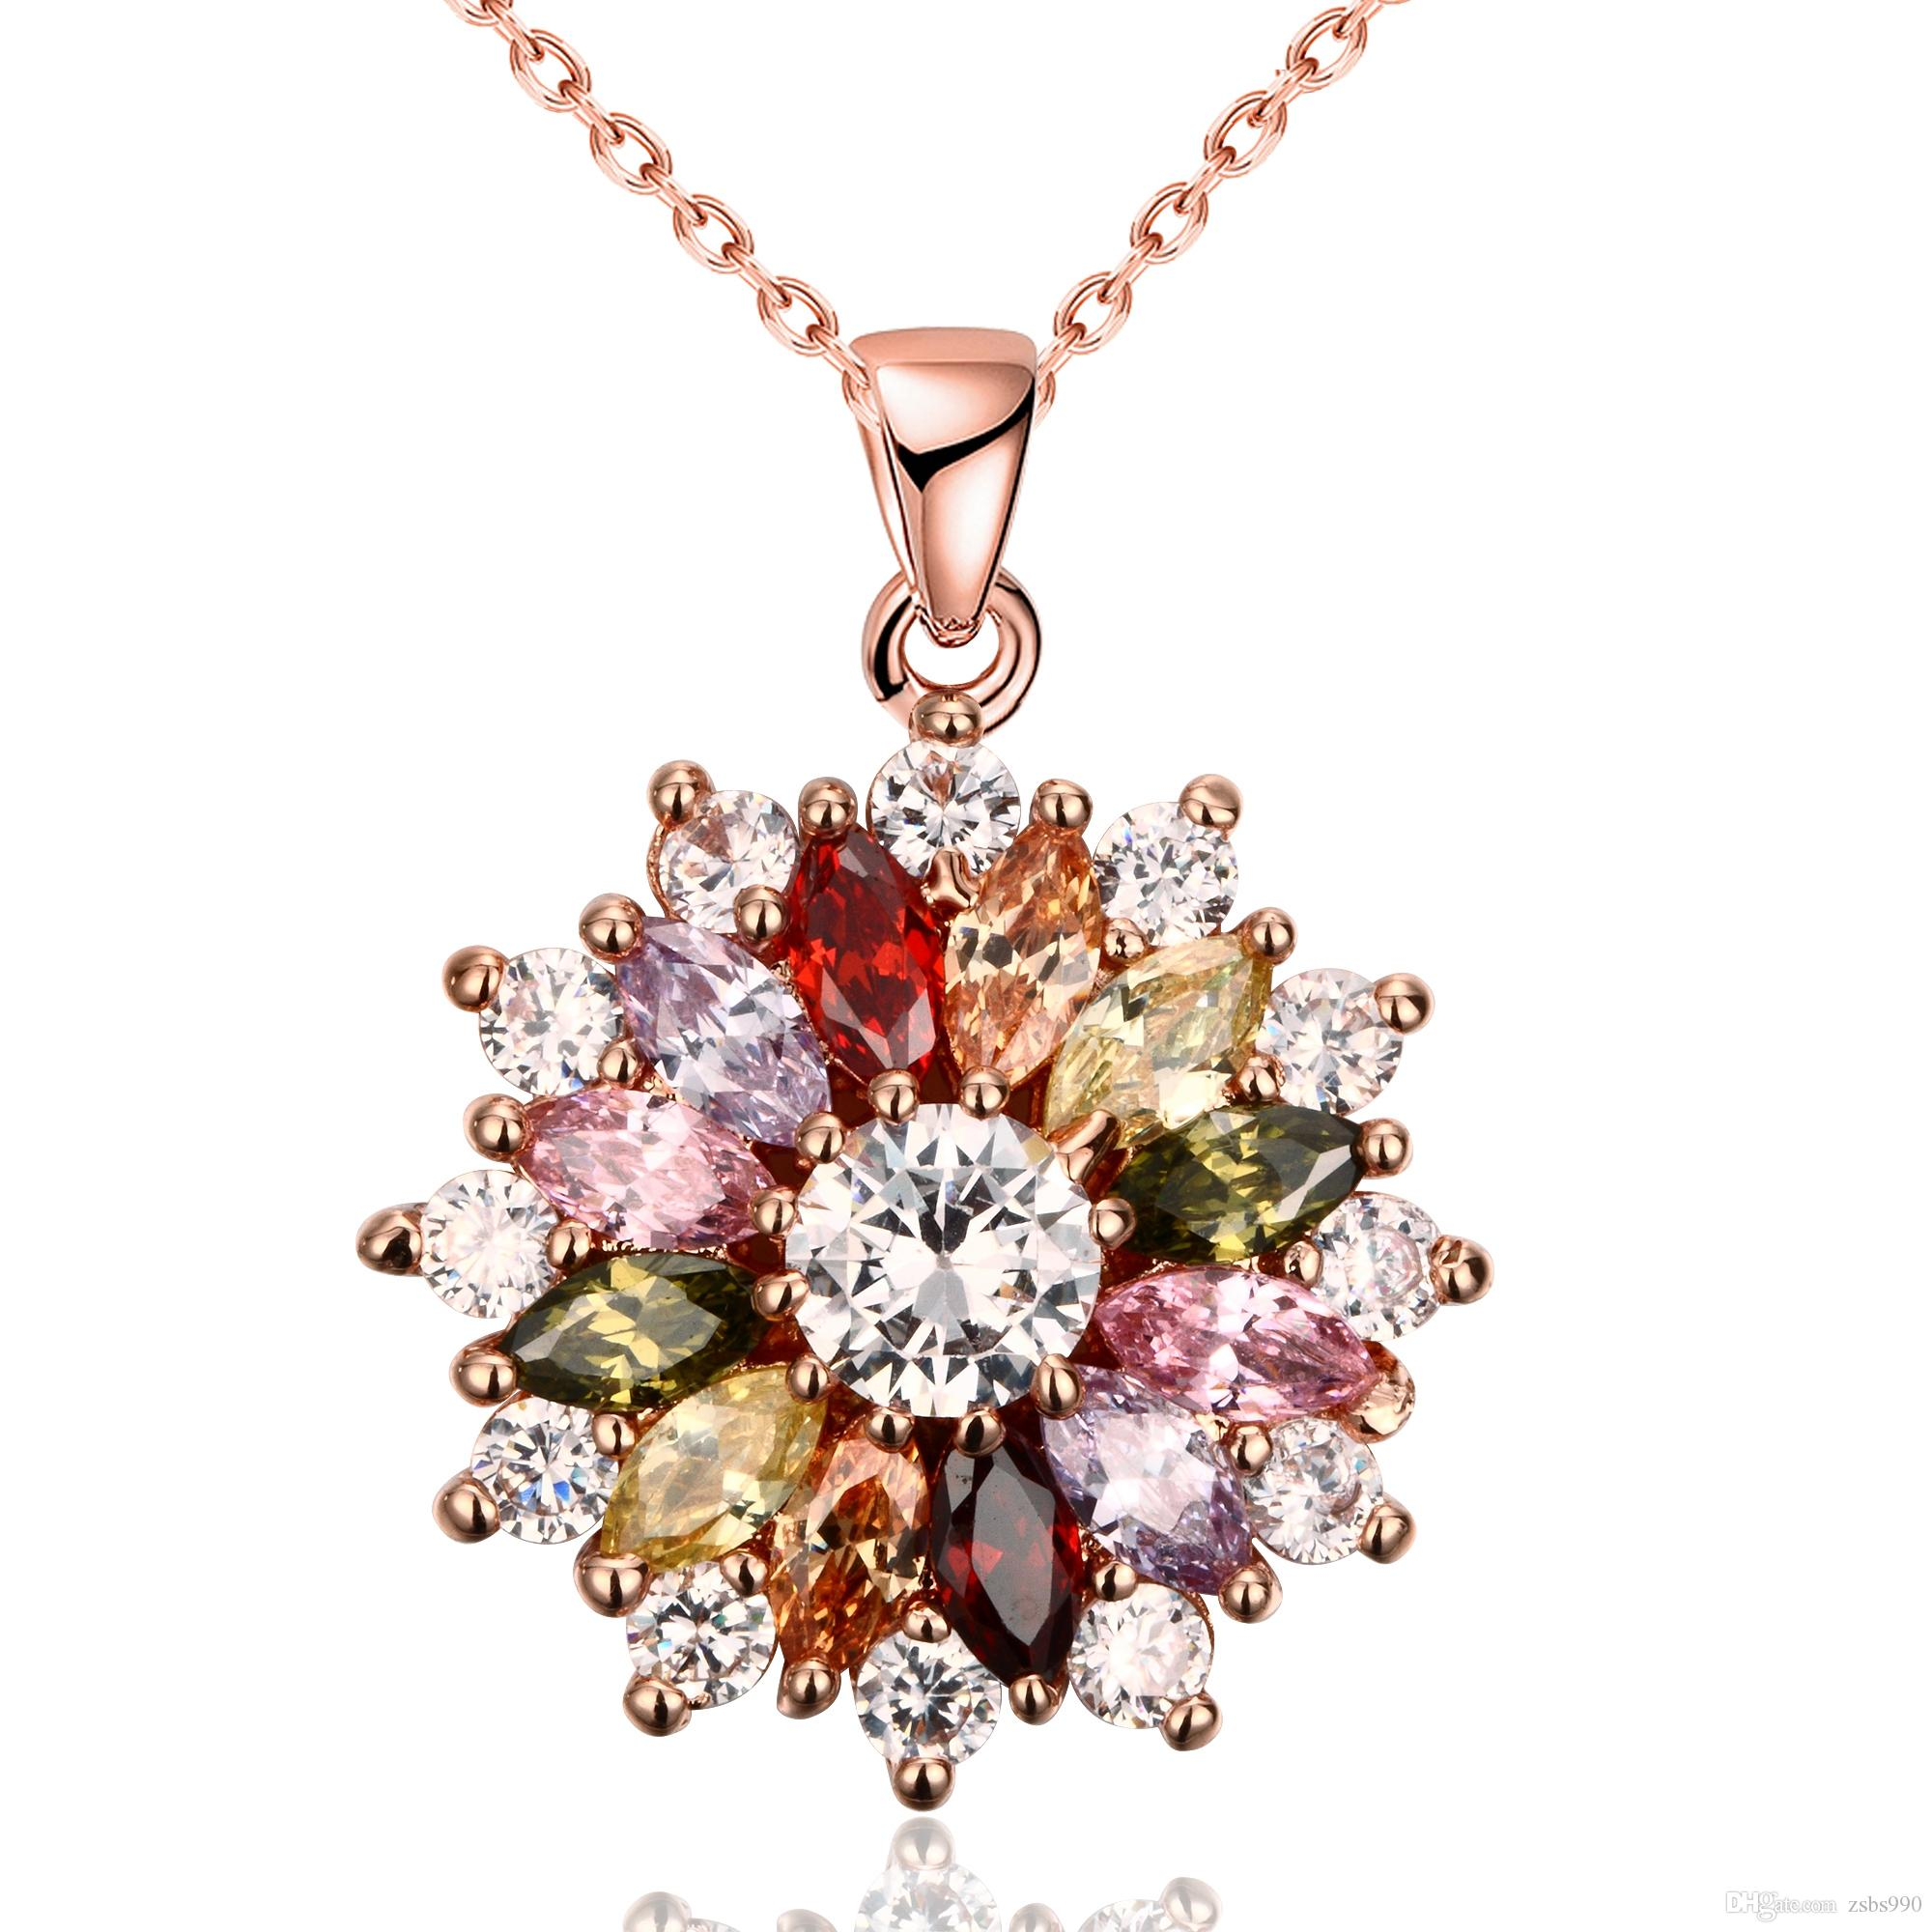 g gold p pendant ac necklaces necklace ce ba bf bb index detail af bd b flower bc cf en eshop tourmaline